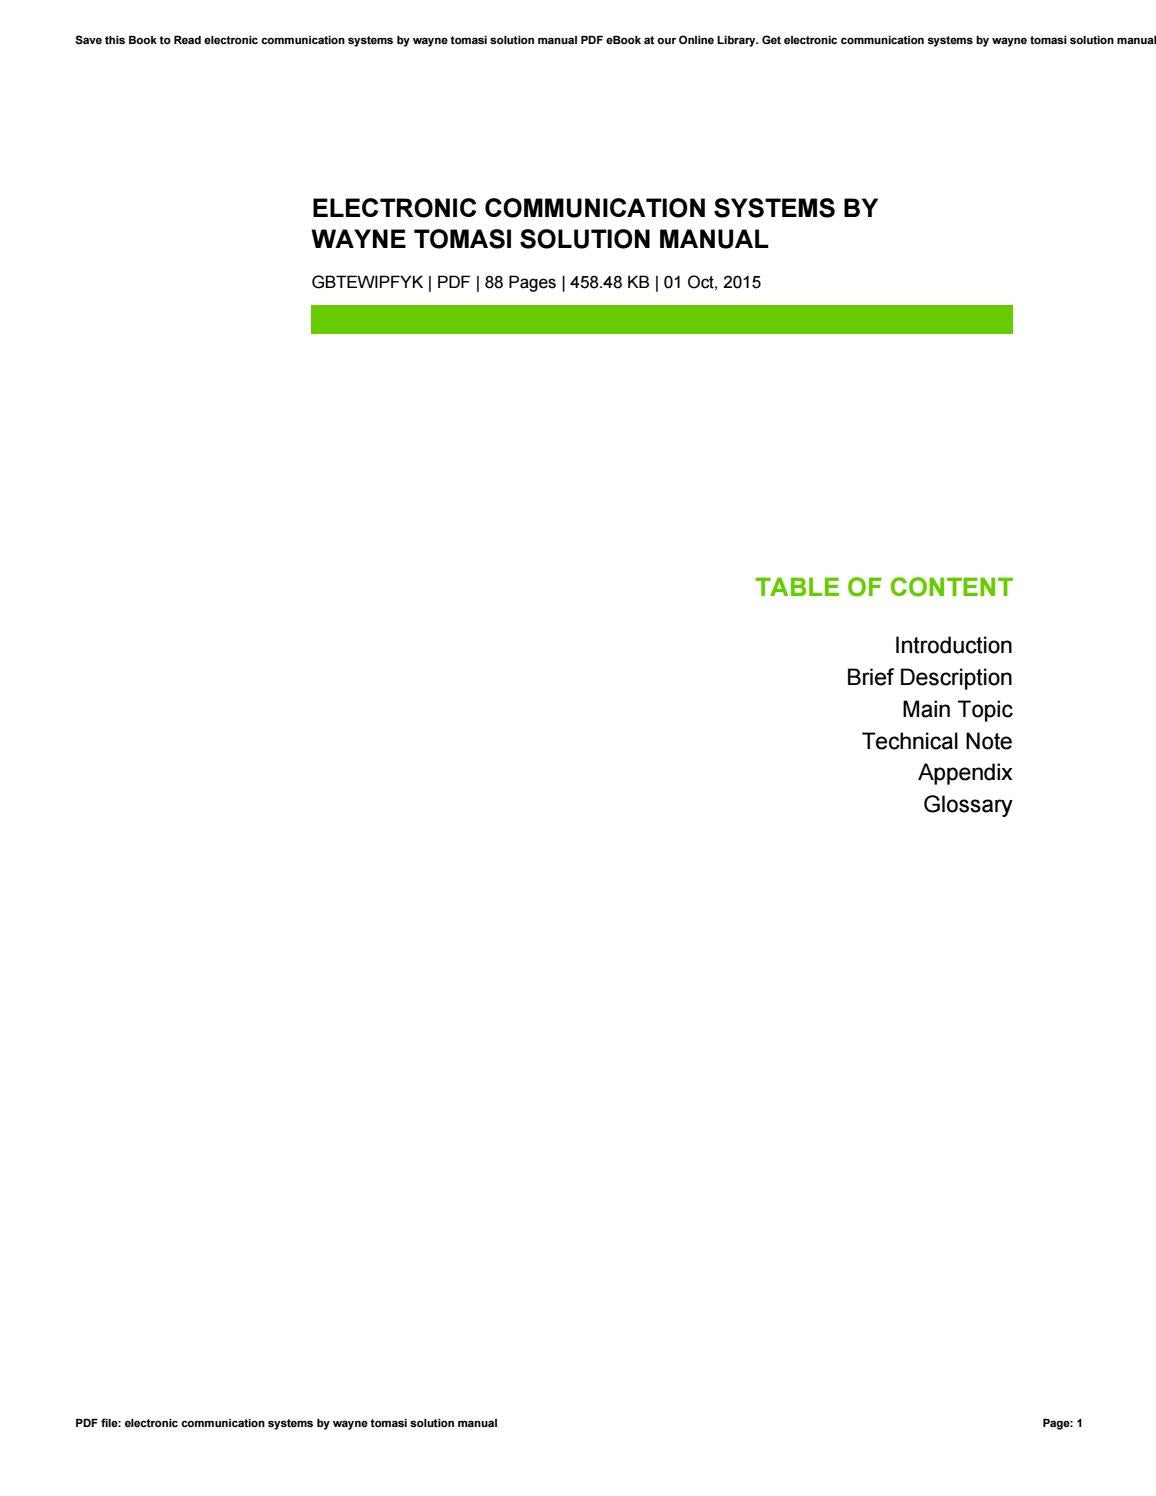 Electronic communication systems by wayne tomasi solution manual by  ClaudiaSegura20341 - issuu